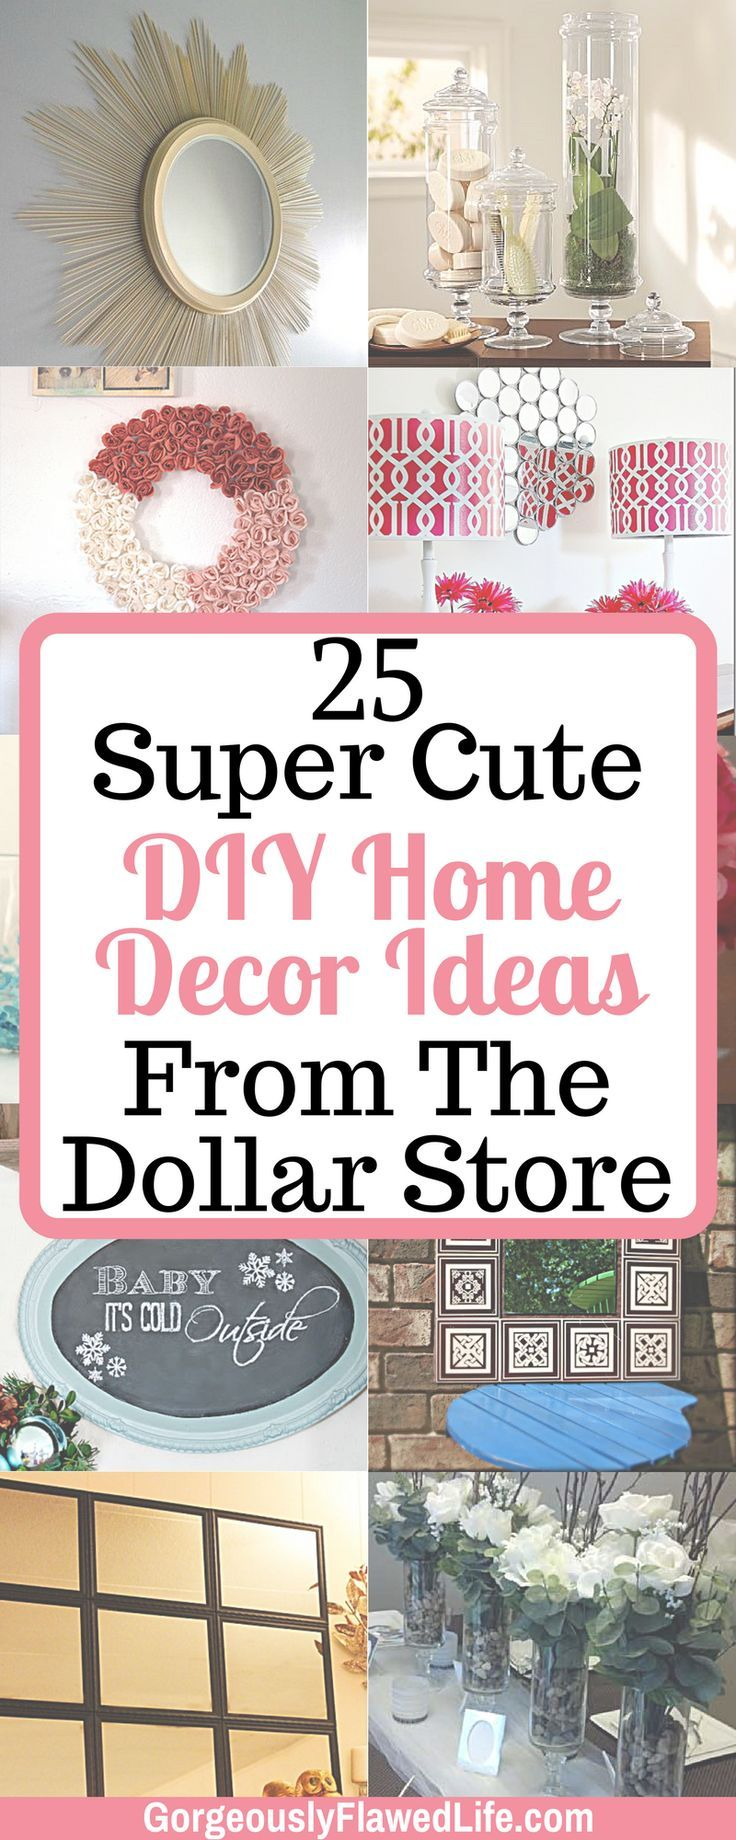 Inexpensive Affordable Cute DIY Home Decor Ideas From The